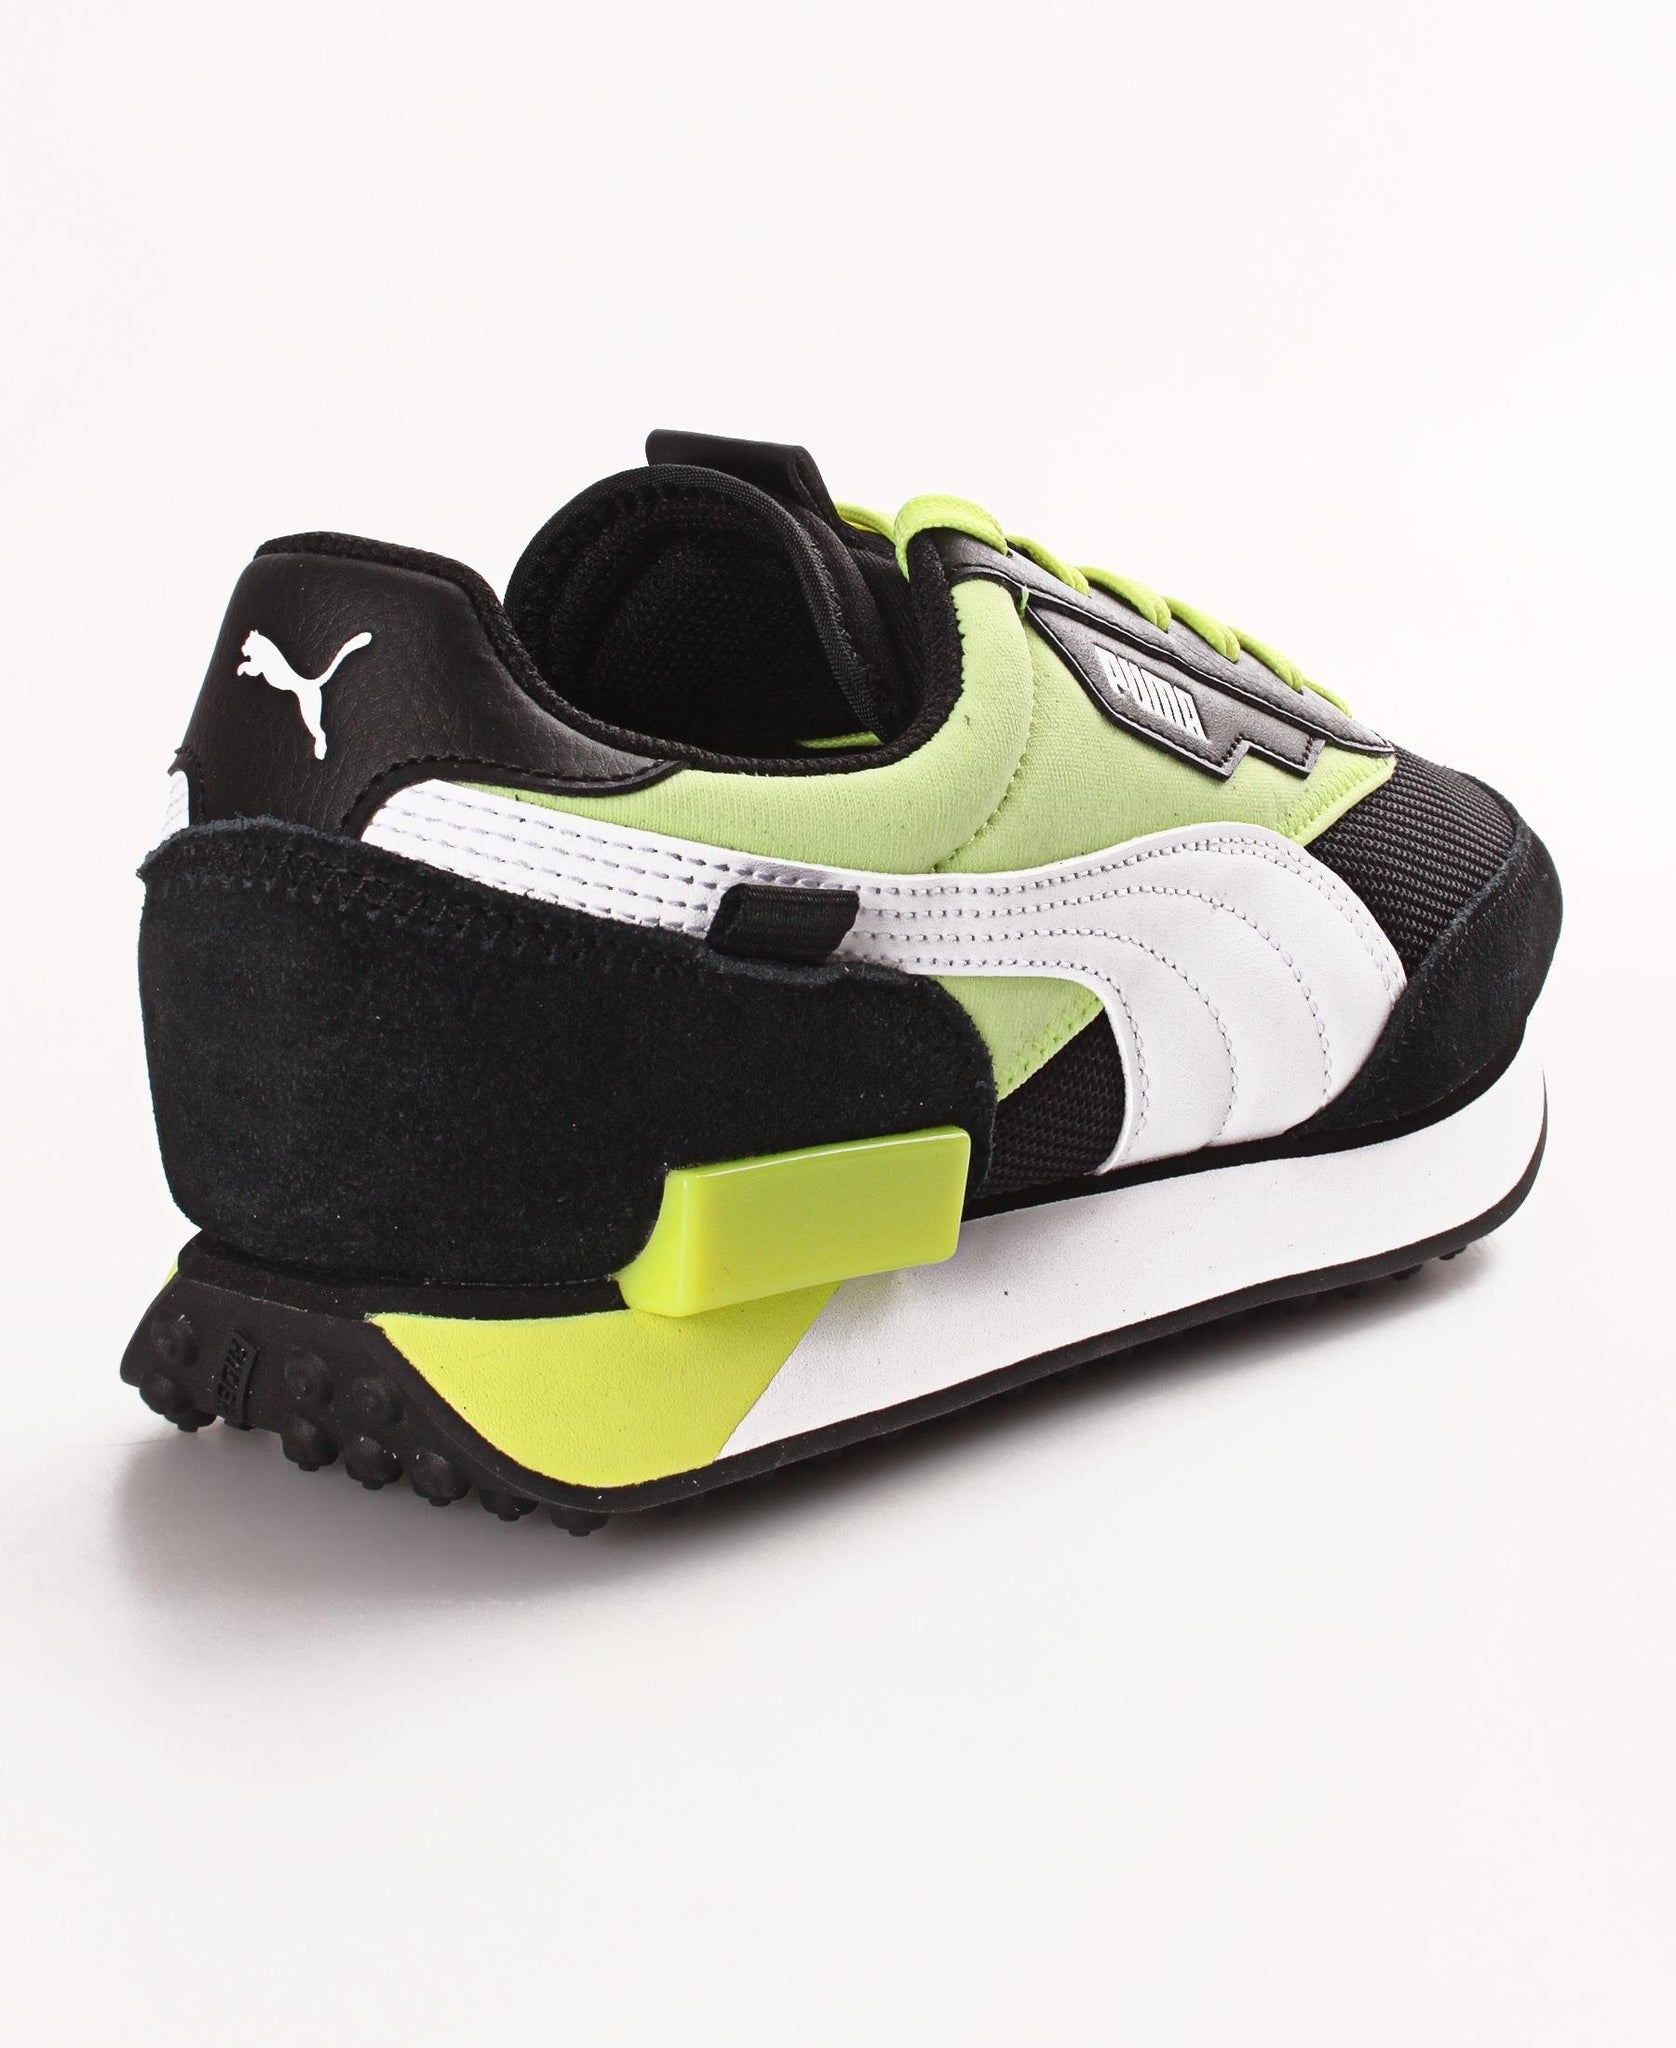 Men's Puma Future Rider Neon Play Sneakers - Black